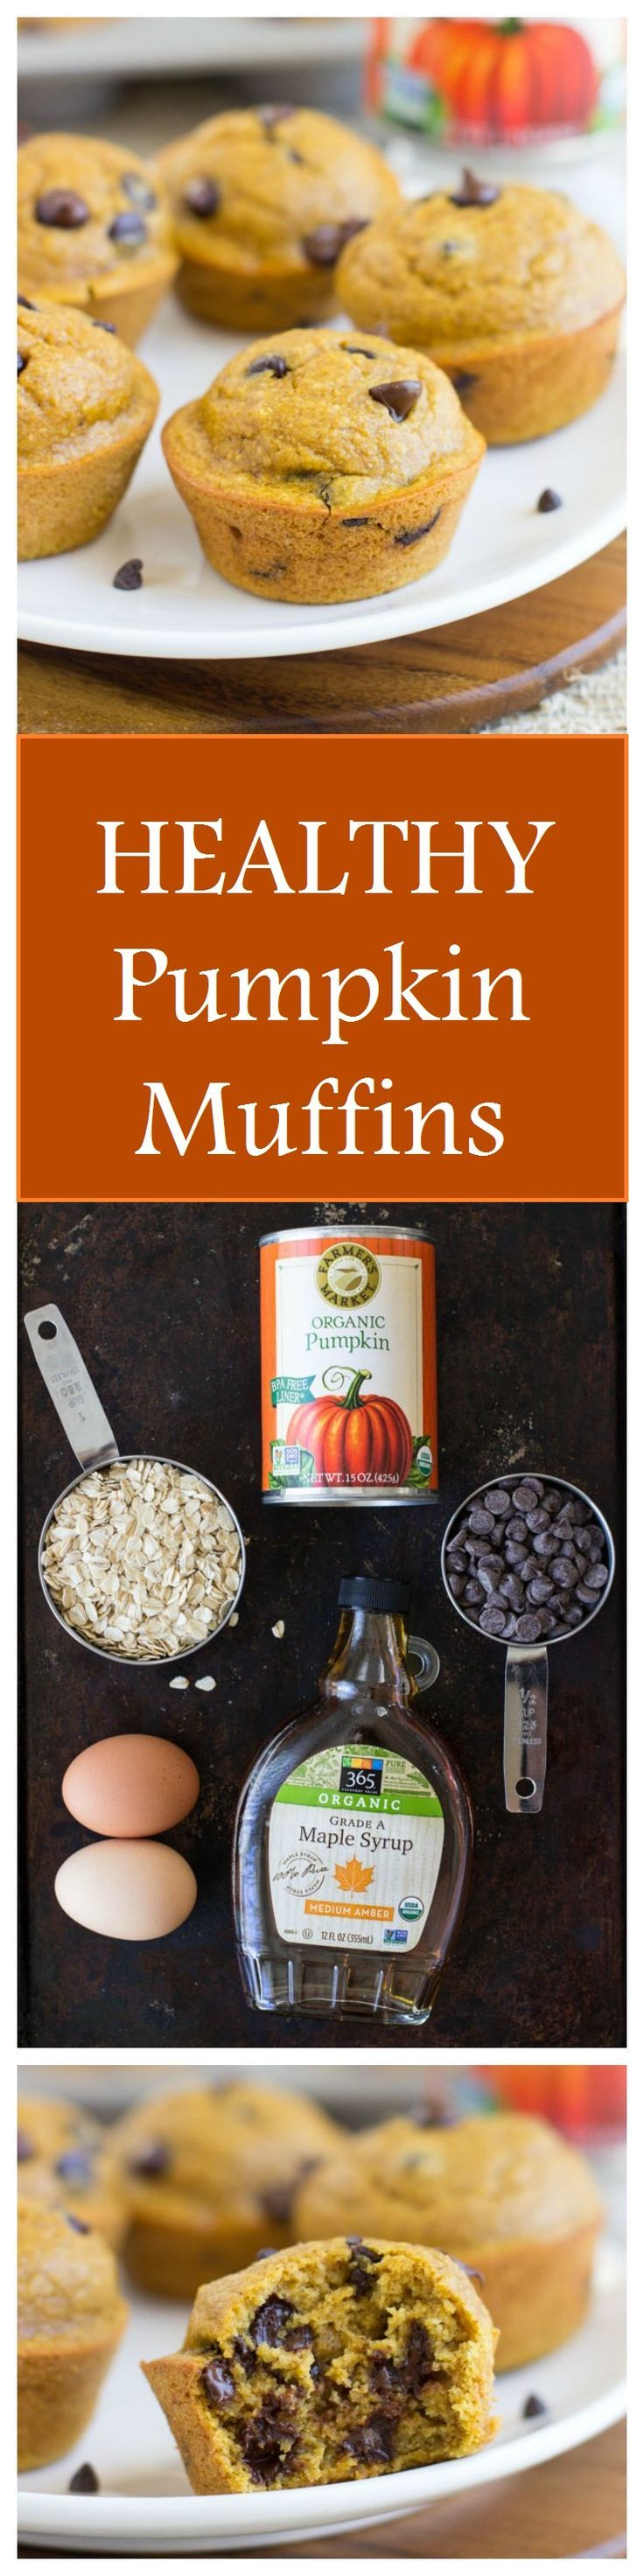 Healthy Flourless Pumpkin Muffins- moist, delicious and super easy to make! #dairyfree